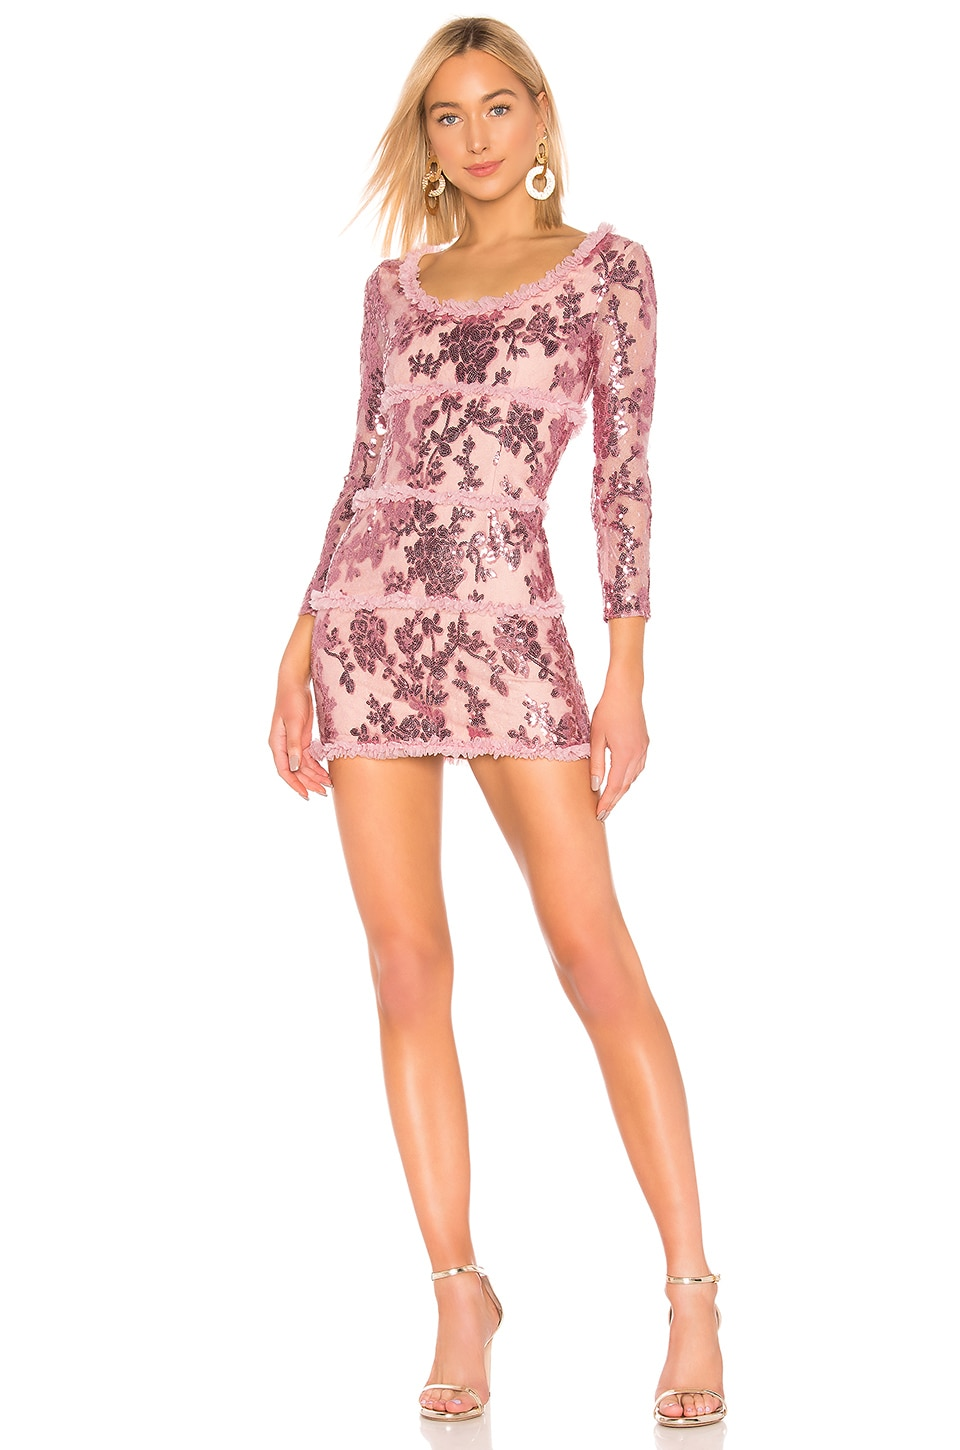 NBD Yareli Mini Dress in Mauve